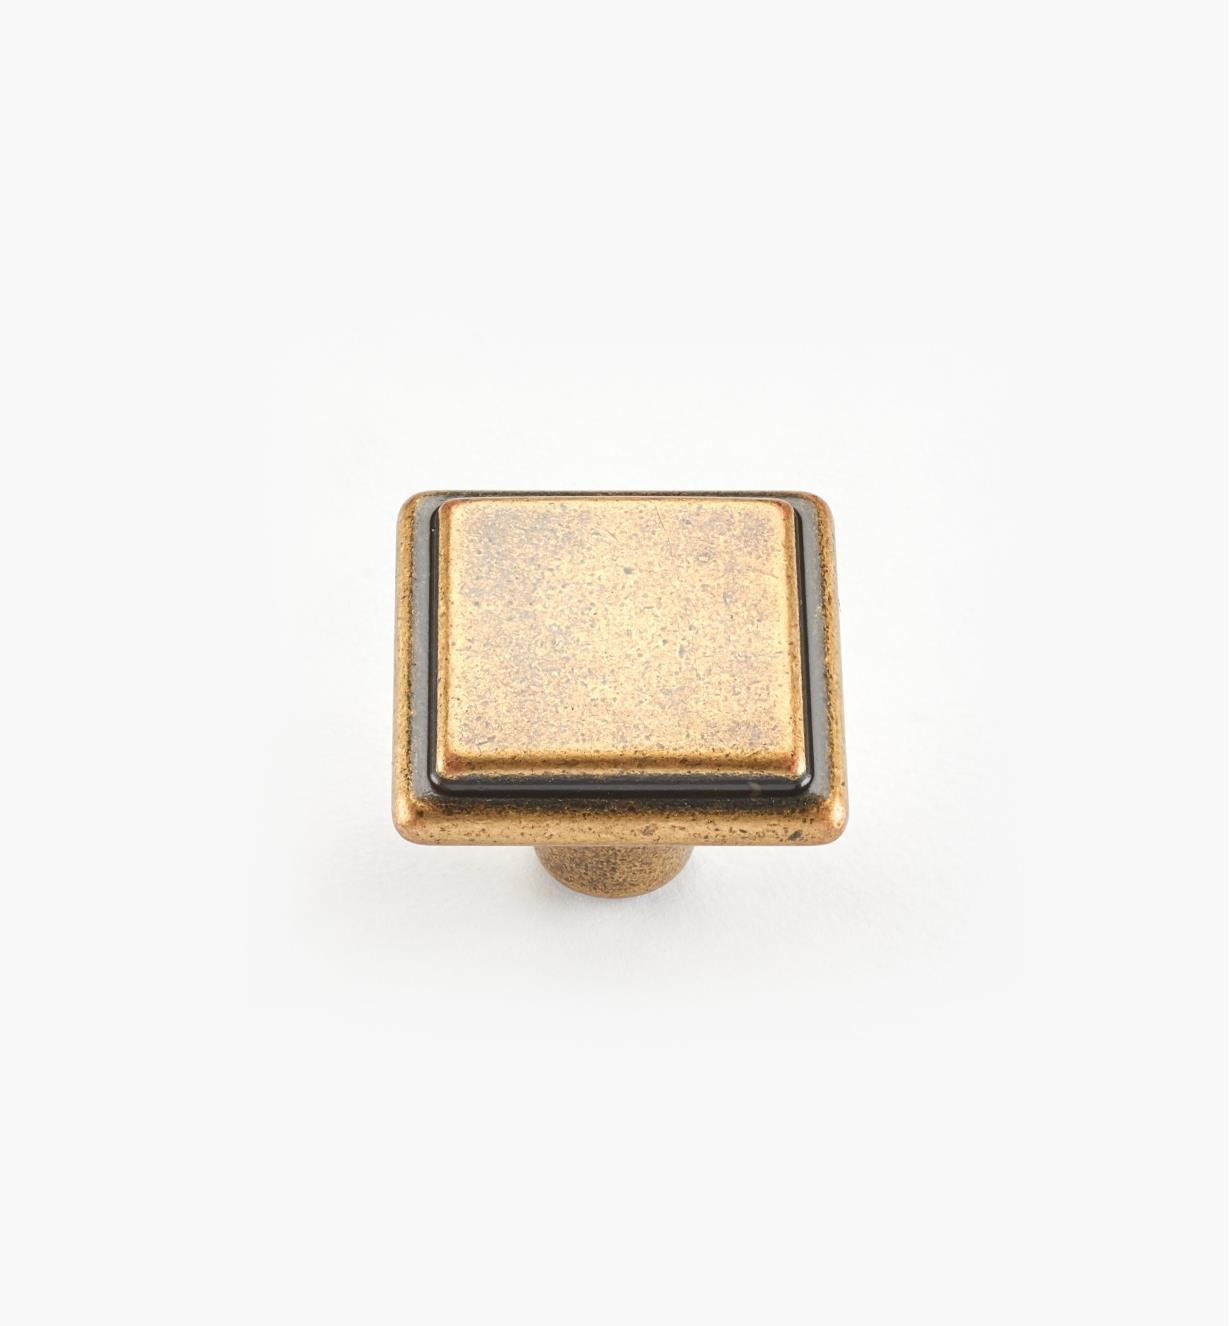 00A7010 - Alfonso Suite - 26mm x 20mm Antique Brass Knob